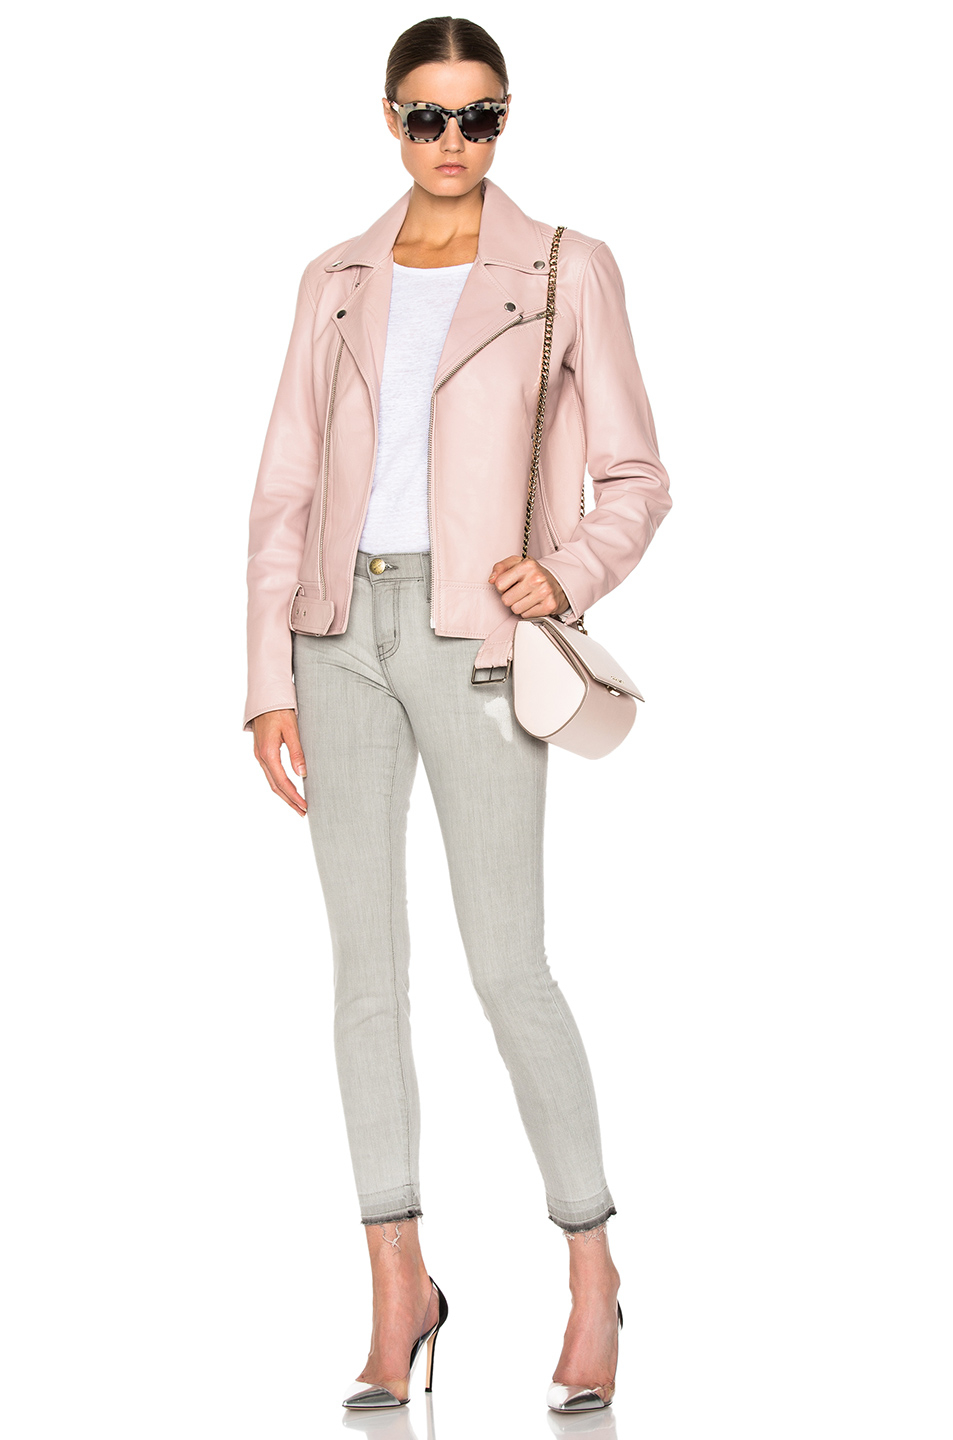 Blk dnm Leather Jacket 18 in Pink | Lyst